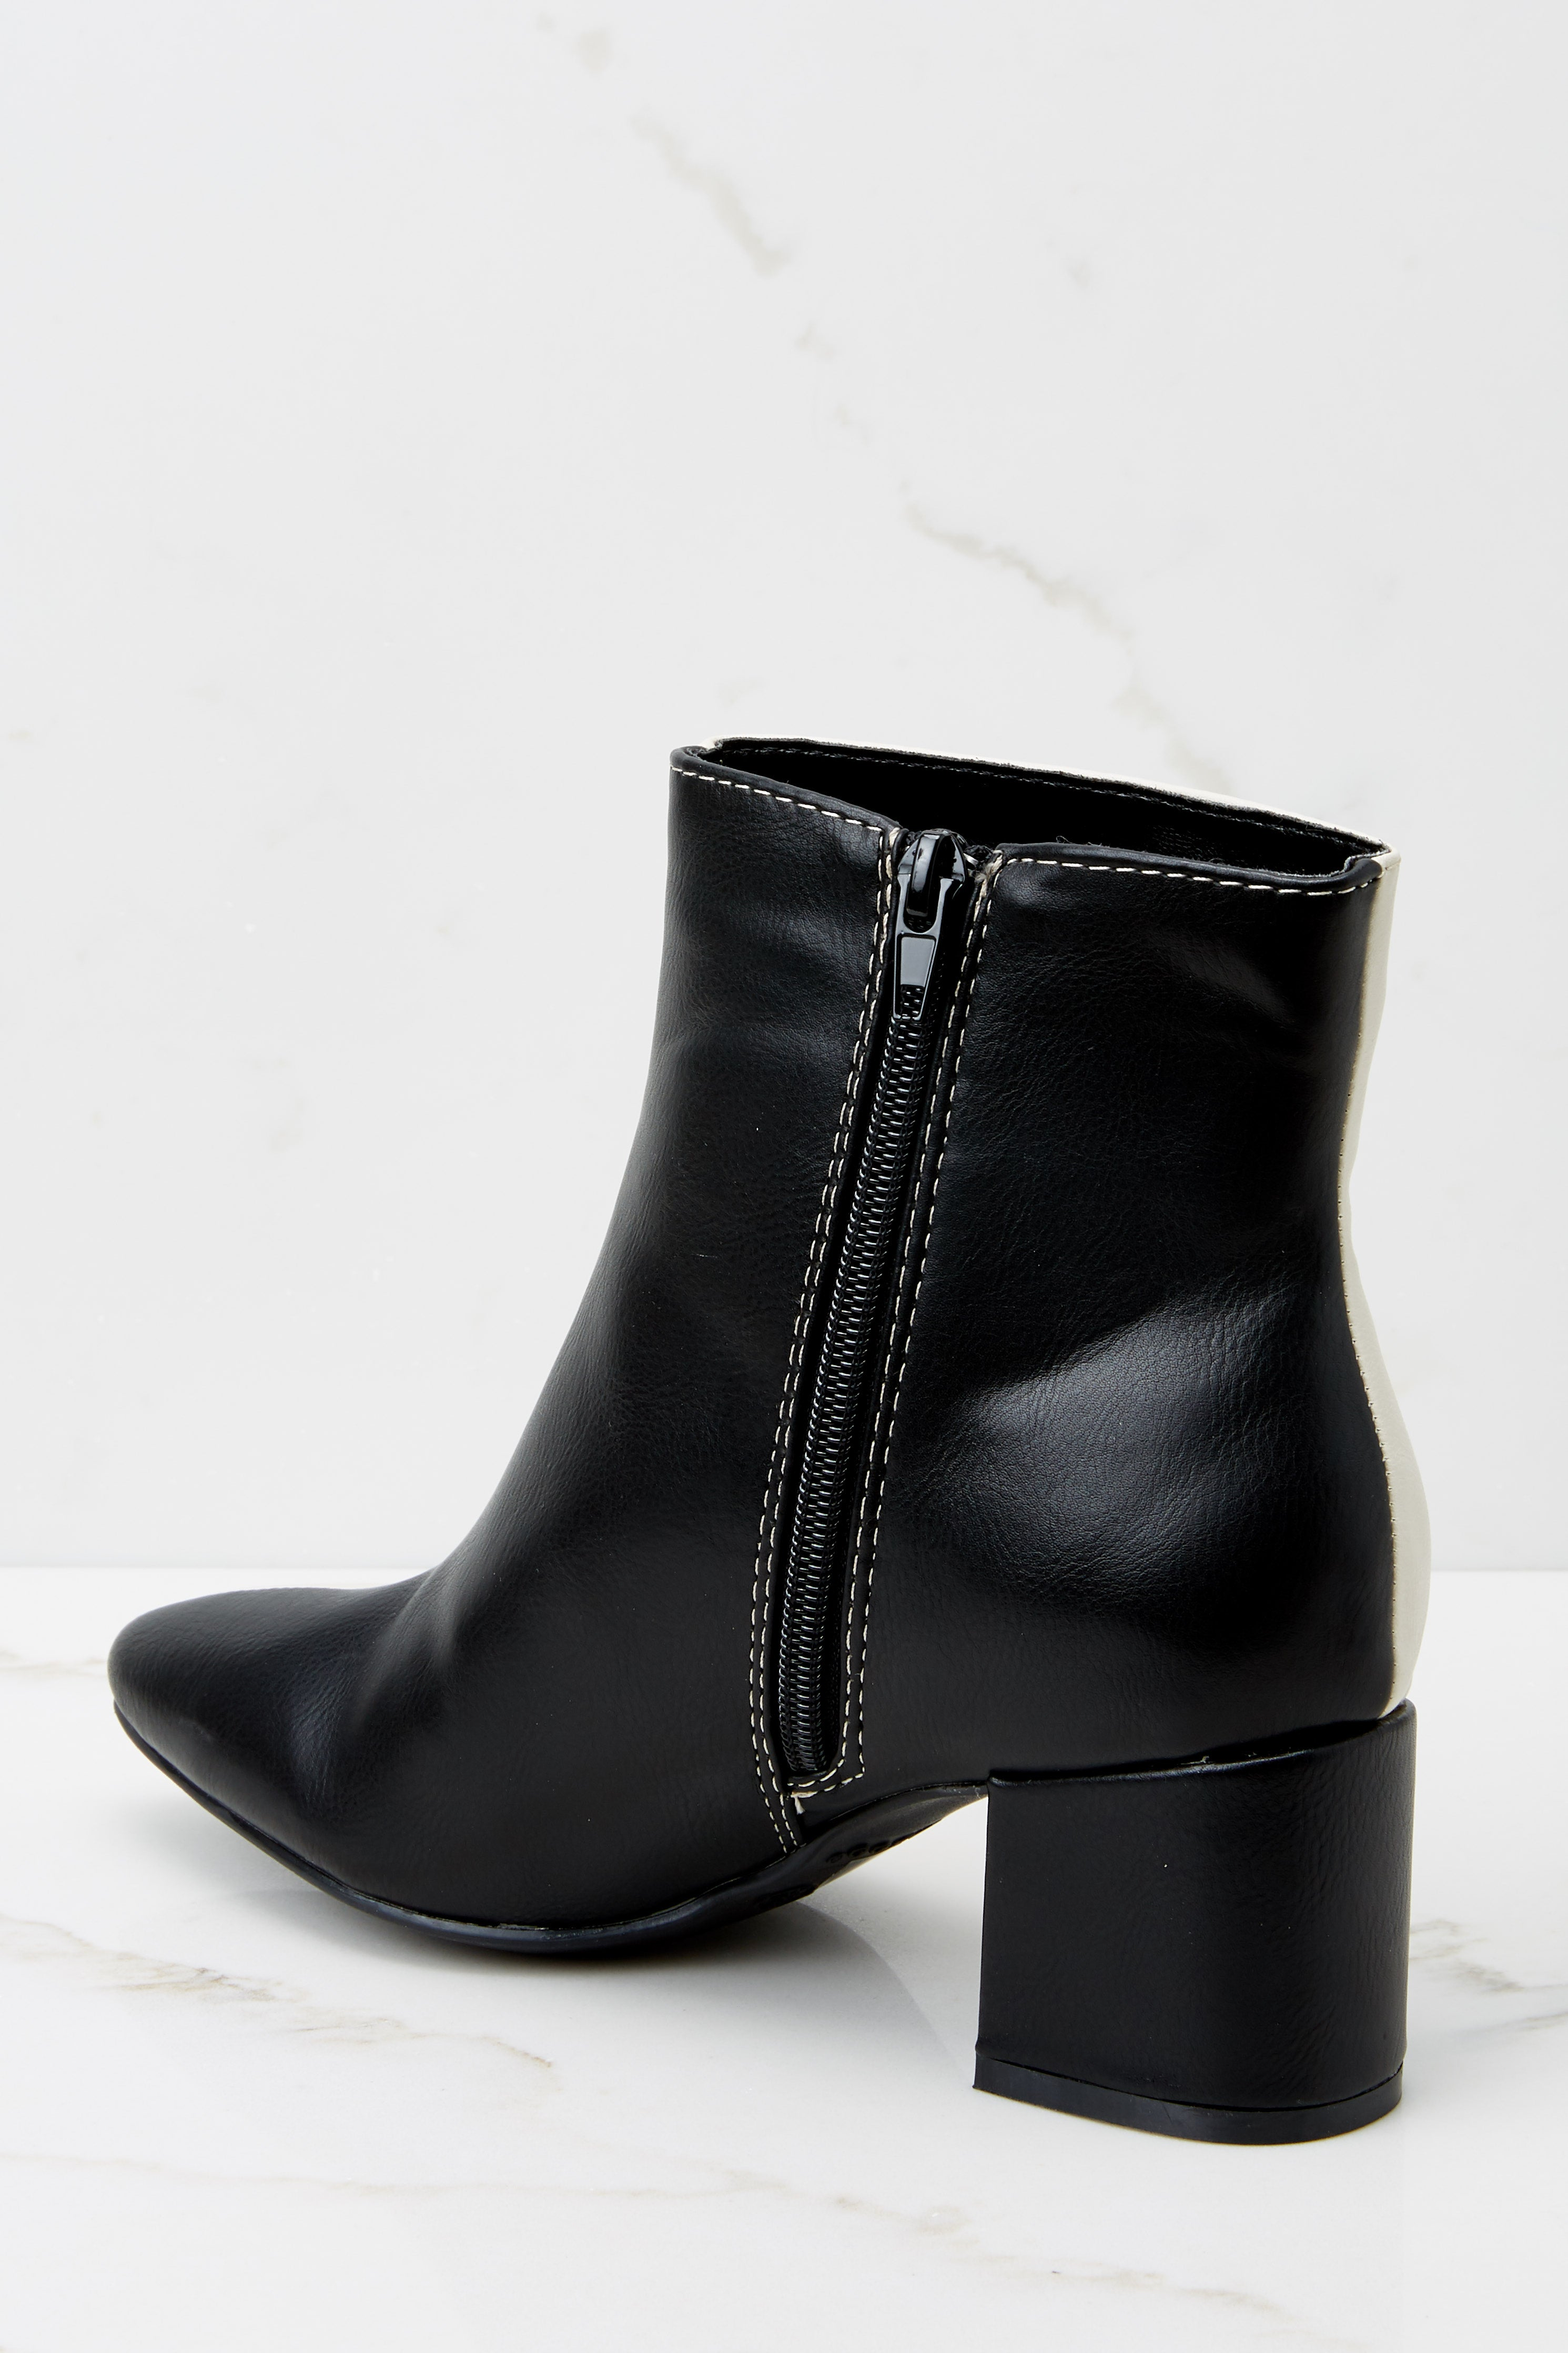 5 Split Decision Ivory And Black Ankle Booties at reddress.com